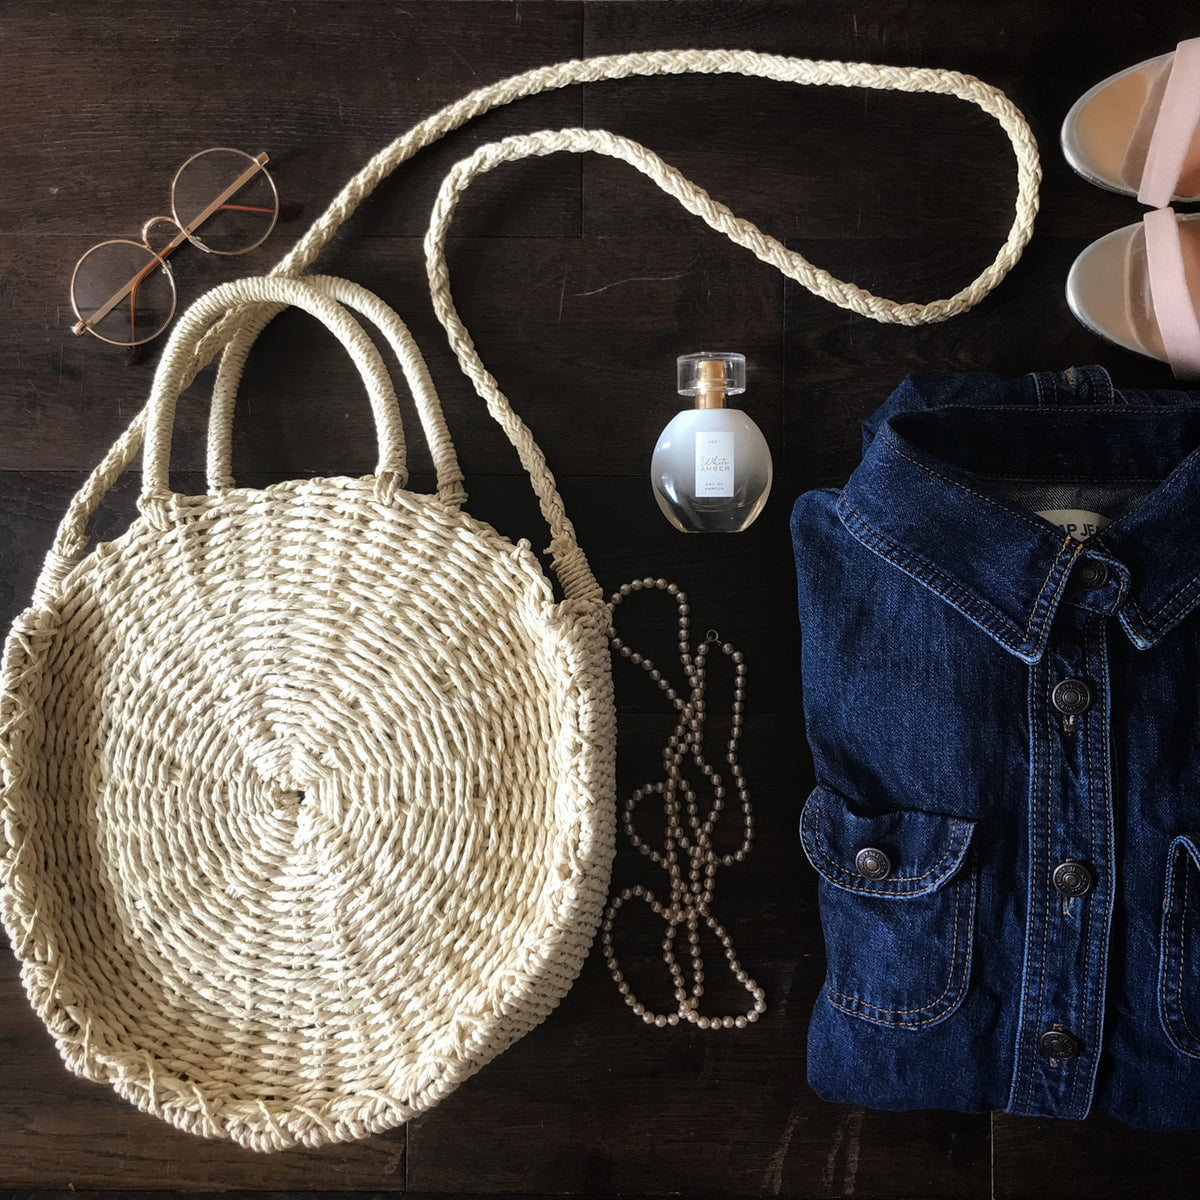 Tallulah straw bag